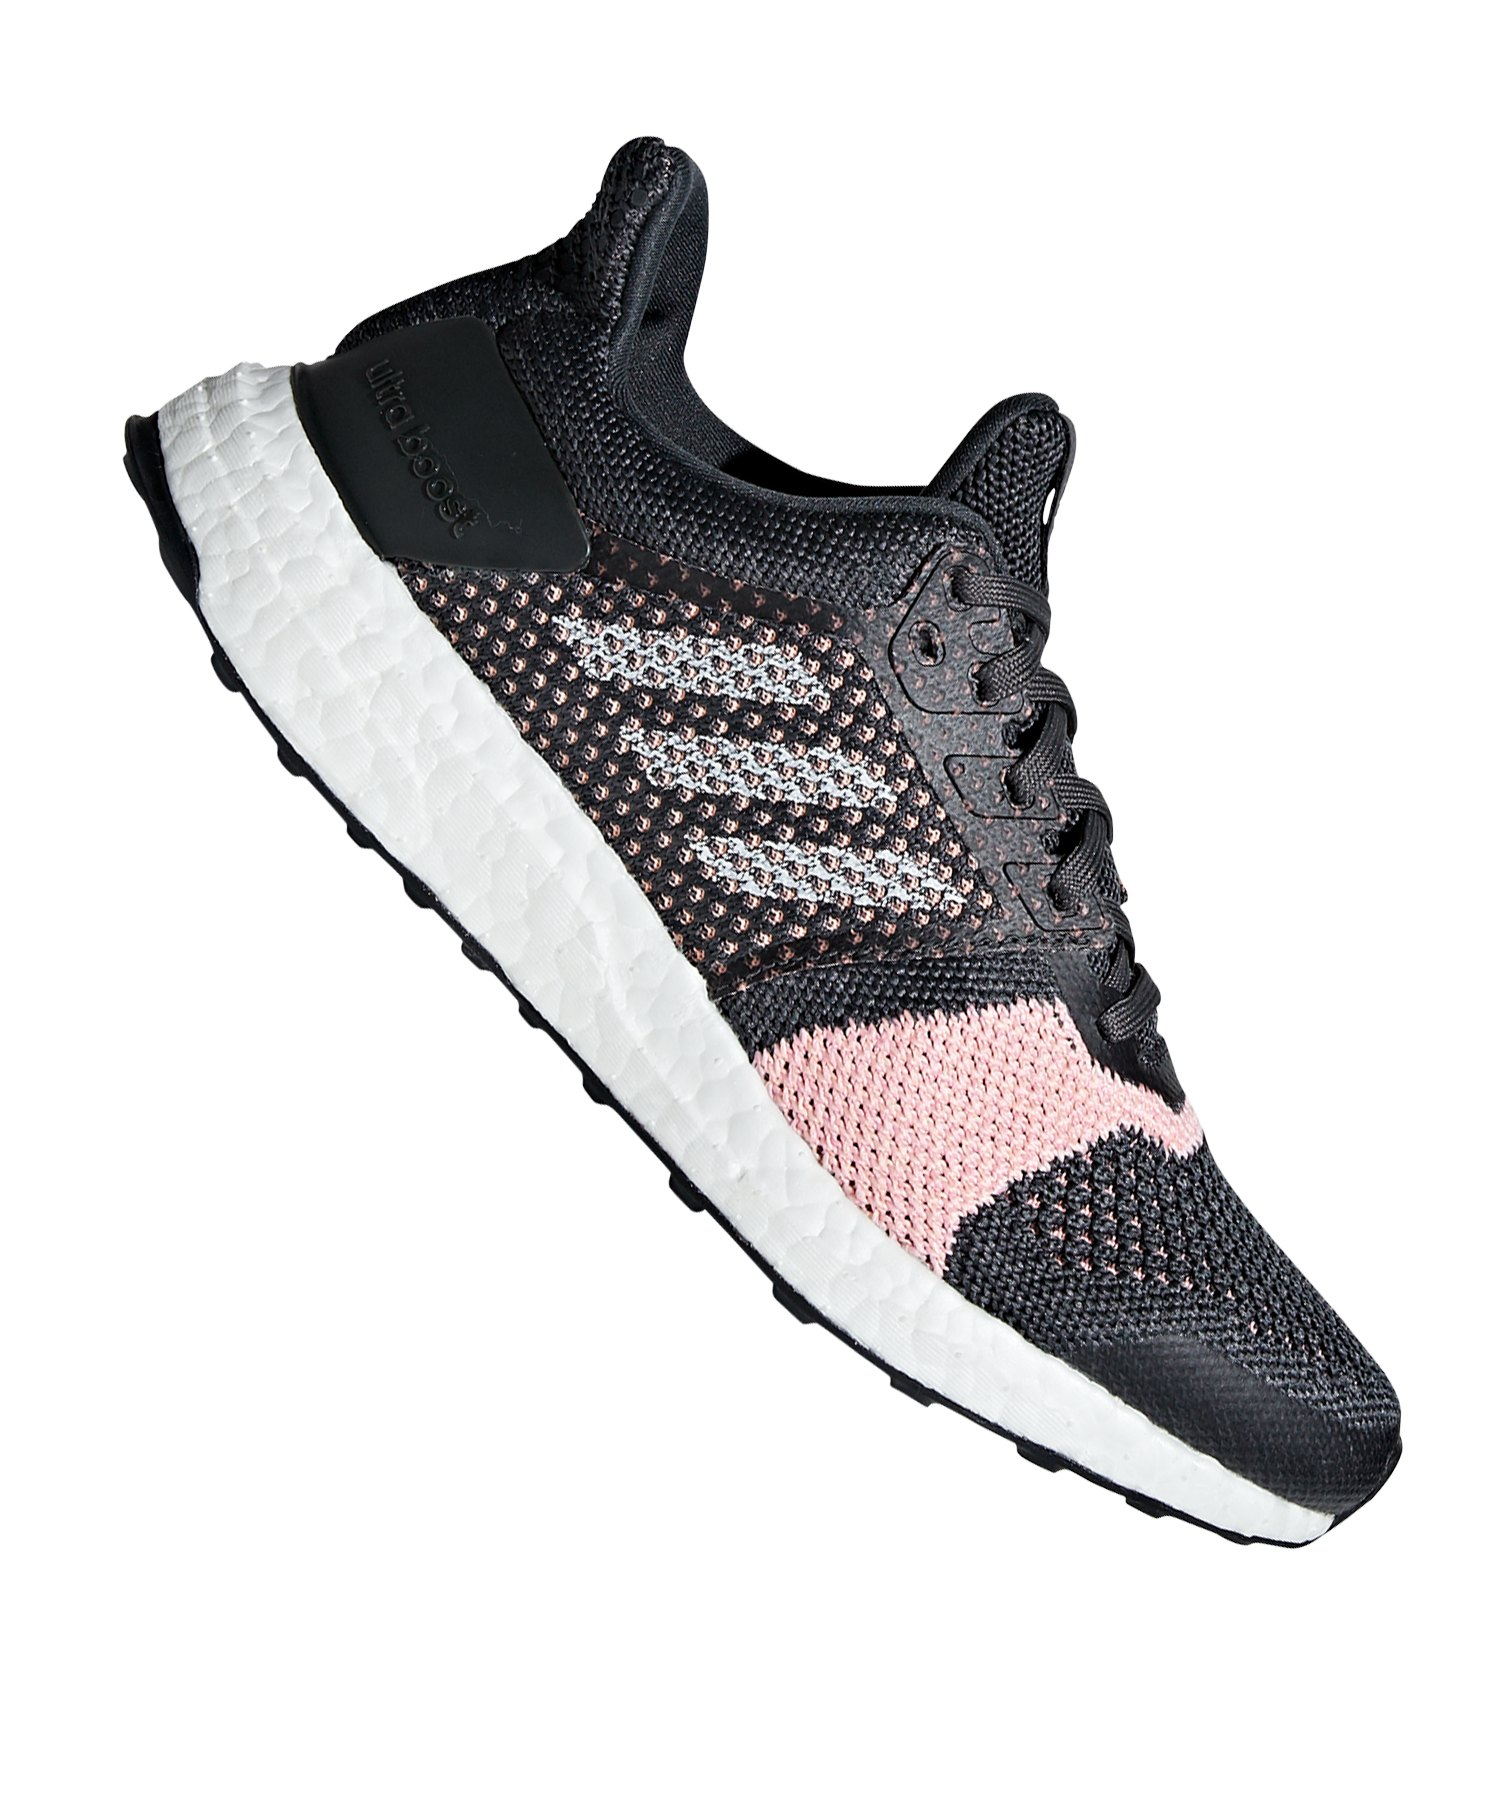 hot adidas ultra boost grau rosa 30ee1 ef9f3